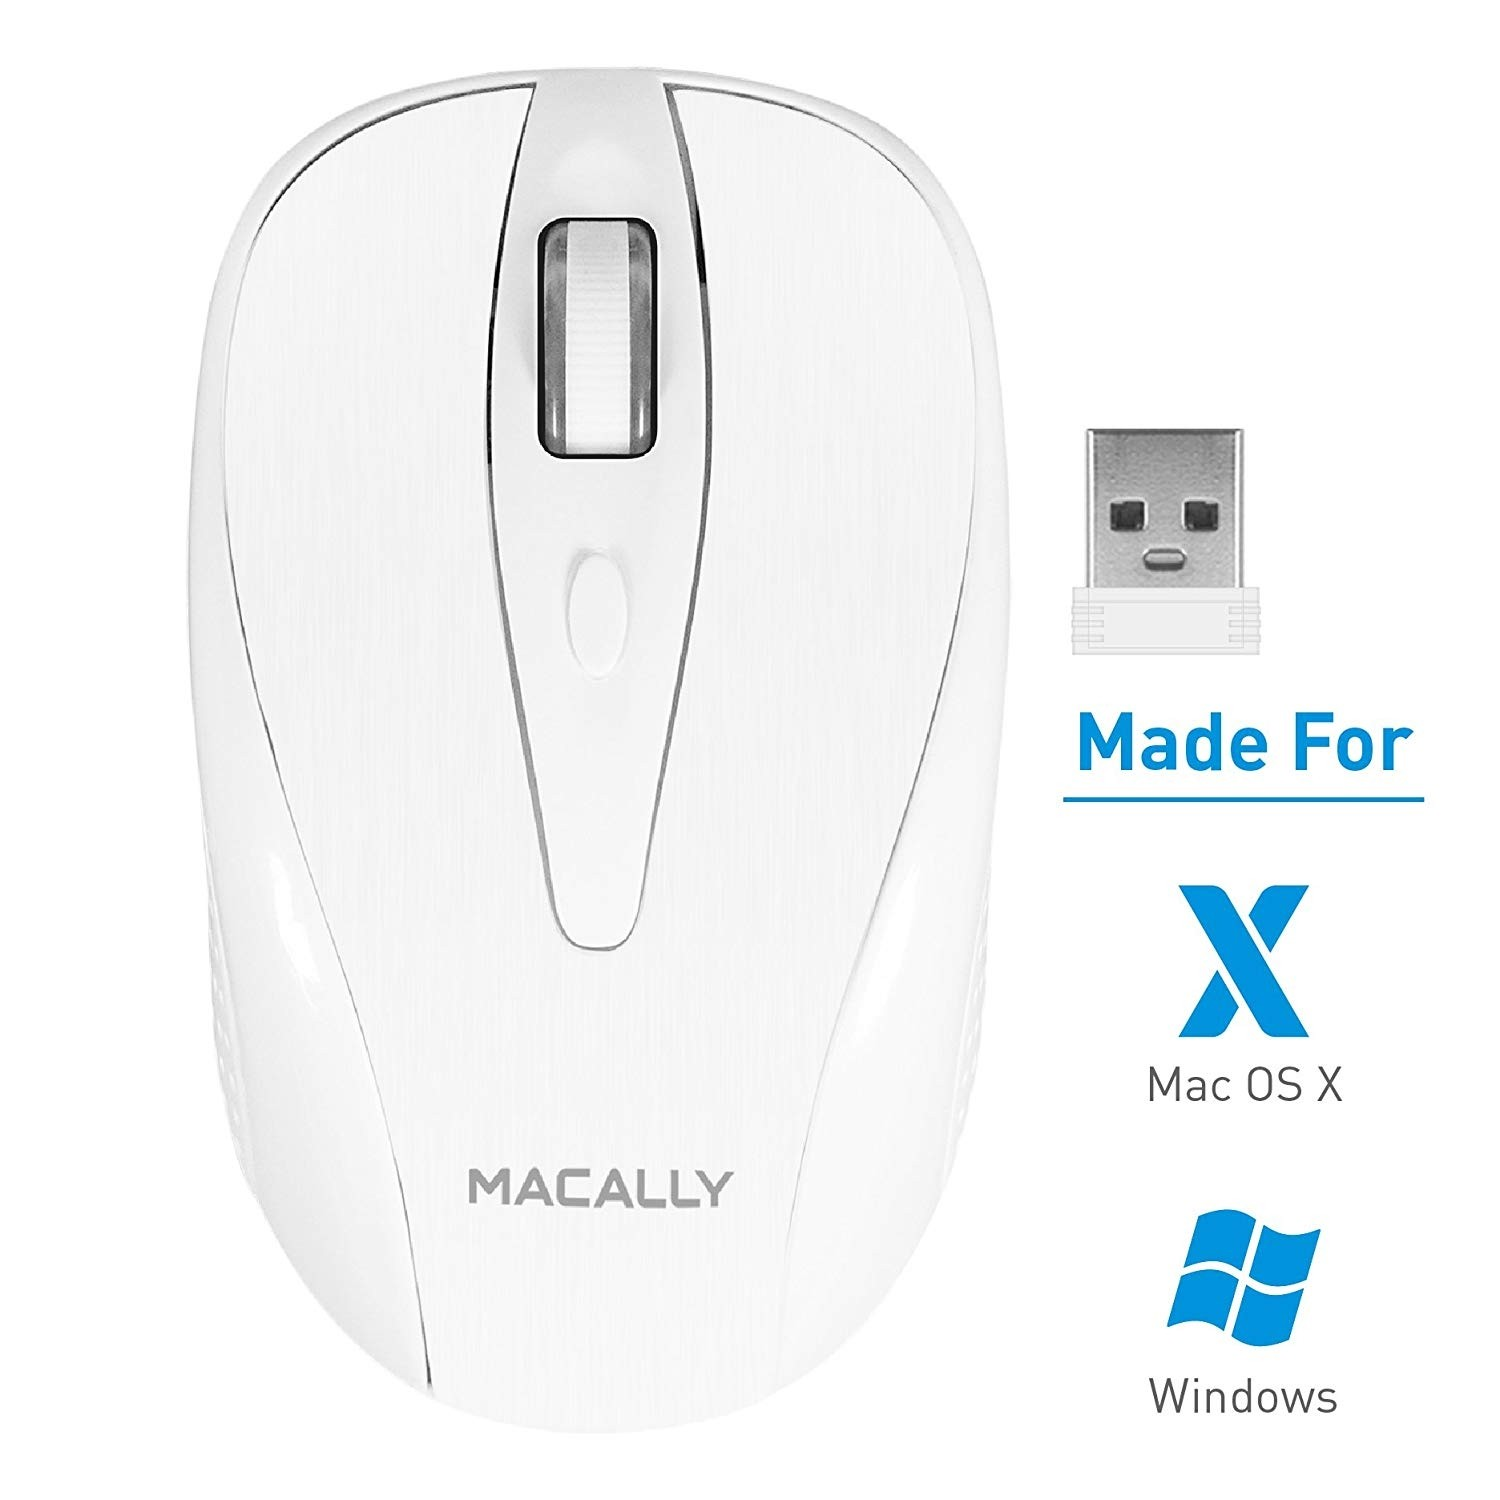 **DISCONTINUED** Macally 2.4G Wireless Mouse with USB Dongle Nano Receiver | Portable Mobile Optical 1000 DPI Cordless RF Mice for Computer, Laptop, Notebook, Apple Mac MacBook, Windows PC - White, RFTURBO